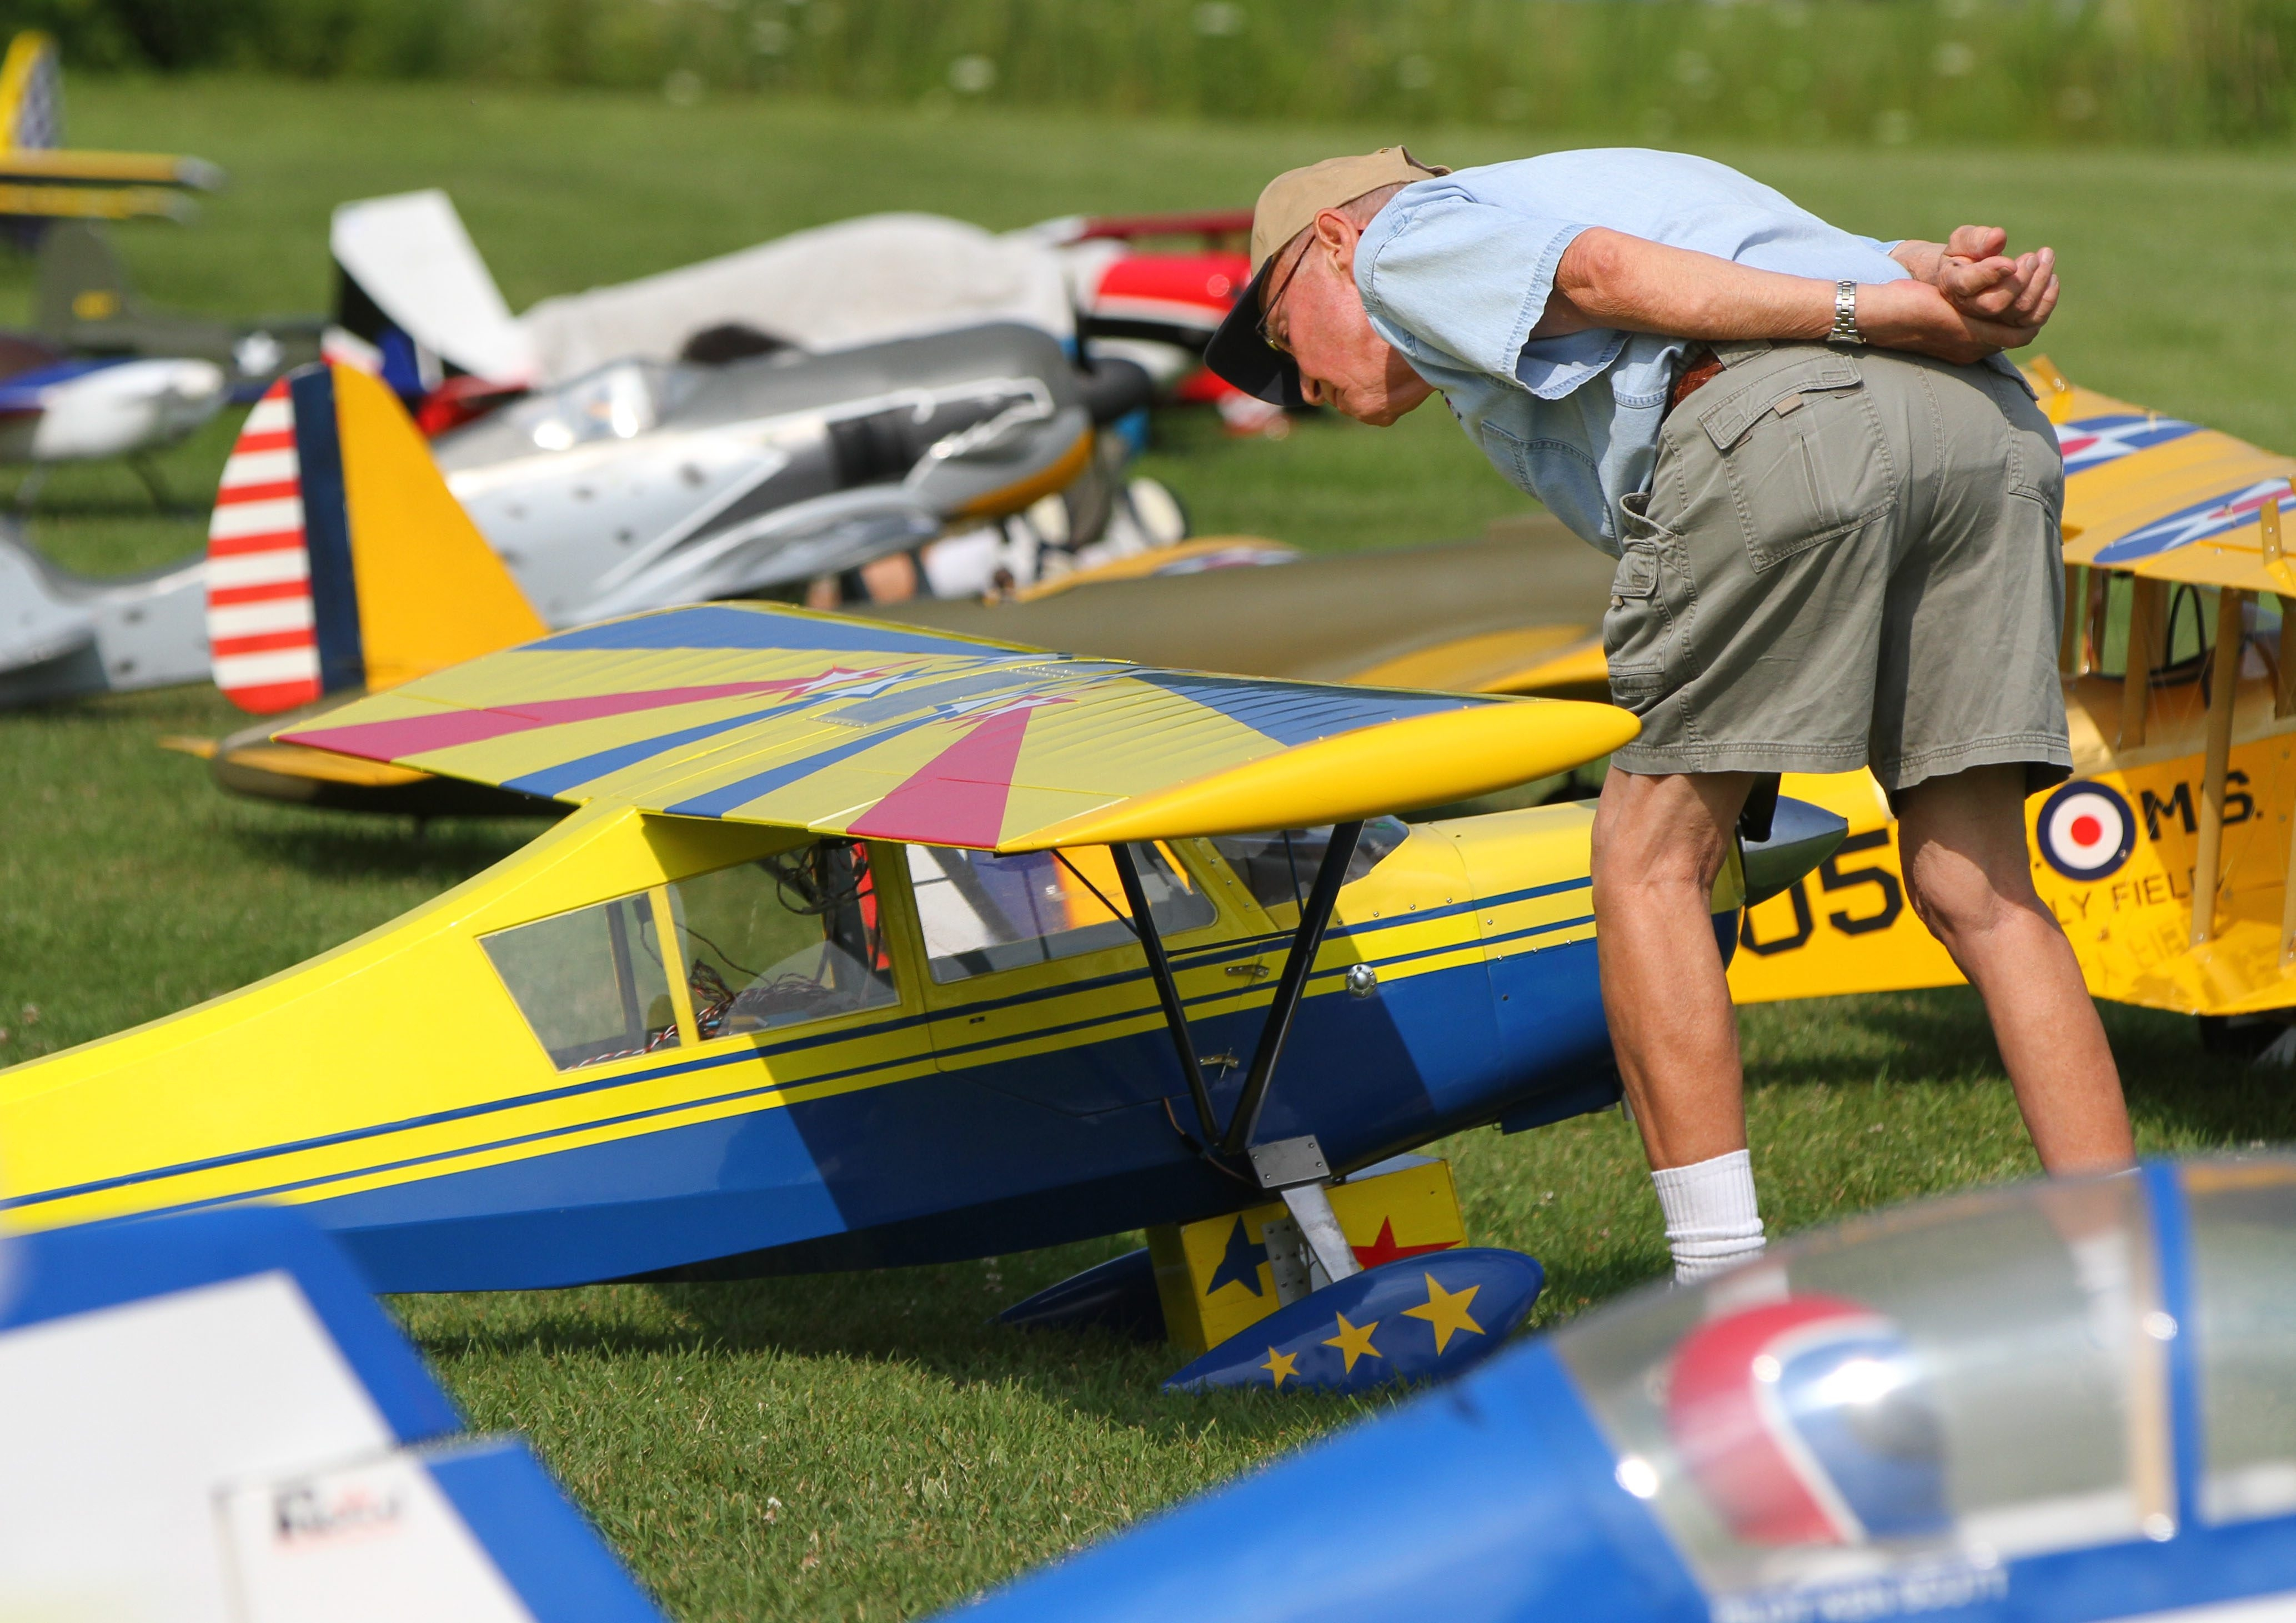 Ron Ogren of Orchard Park looks over a plane during the Flying Knights of Hamburg's Model Aircraft Scale Rally in Hamburg Saturday.